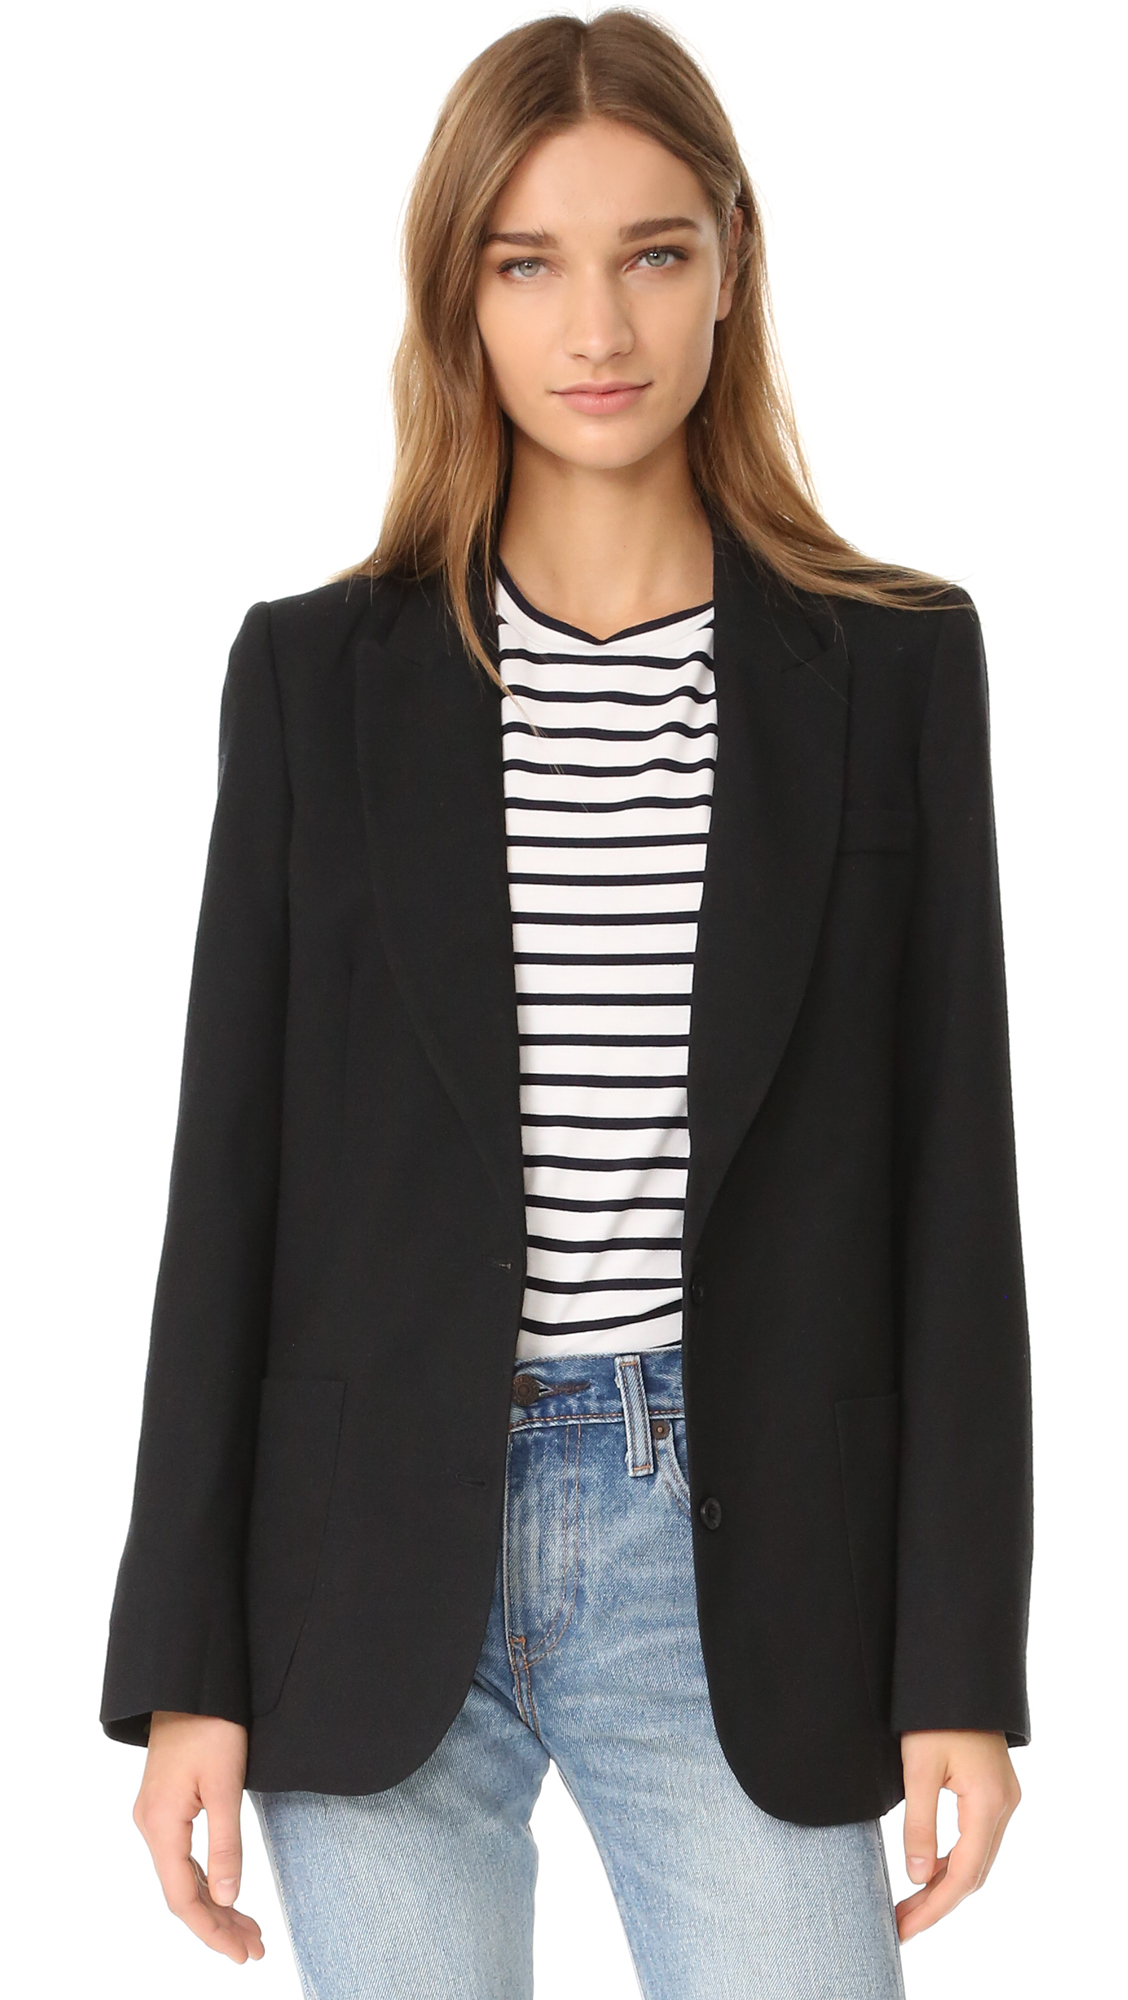 Anine Bing Classic Fit Blazer - Black at Shopbop